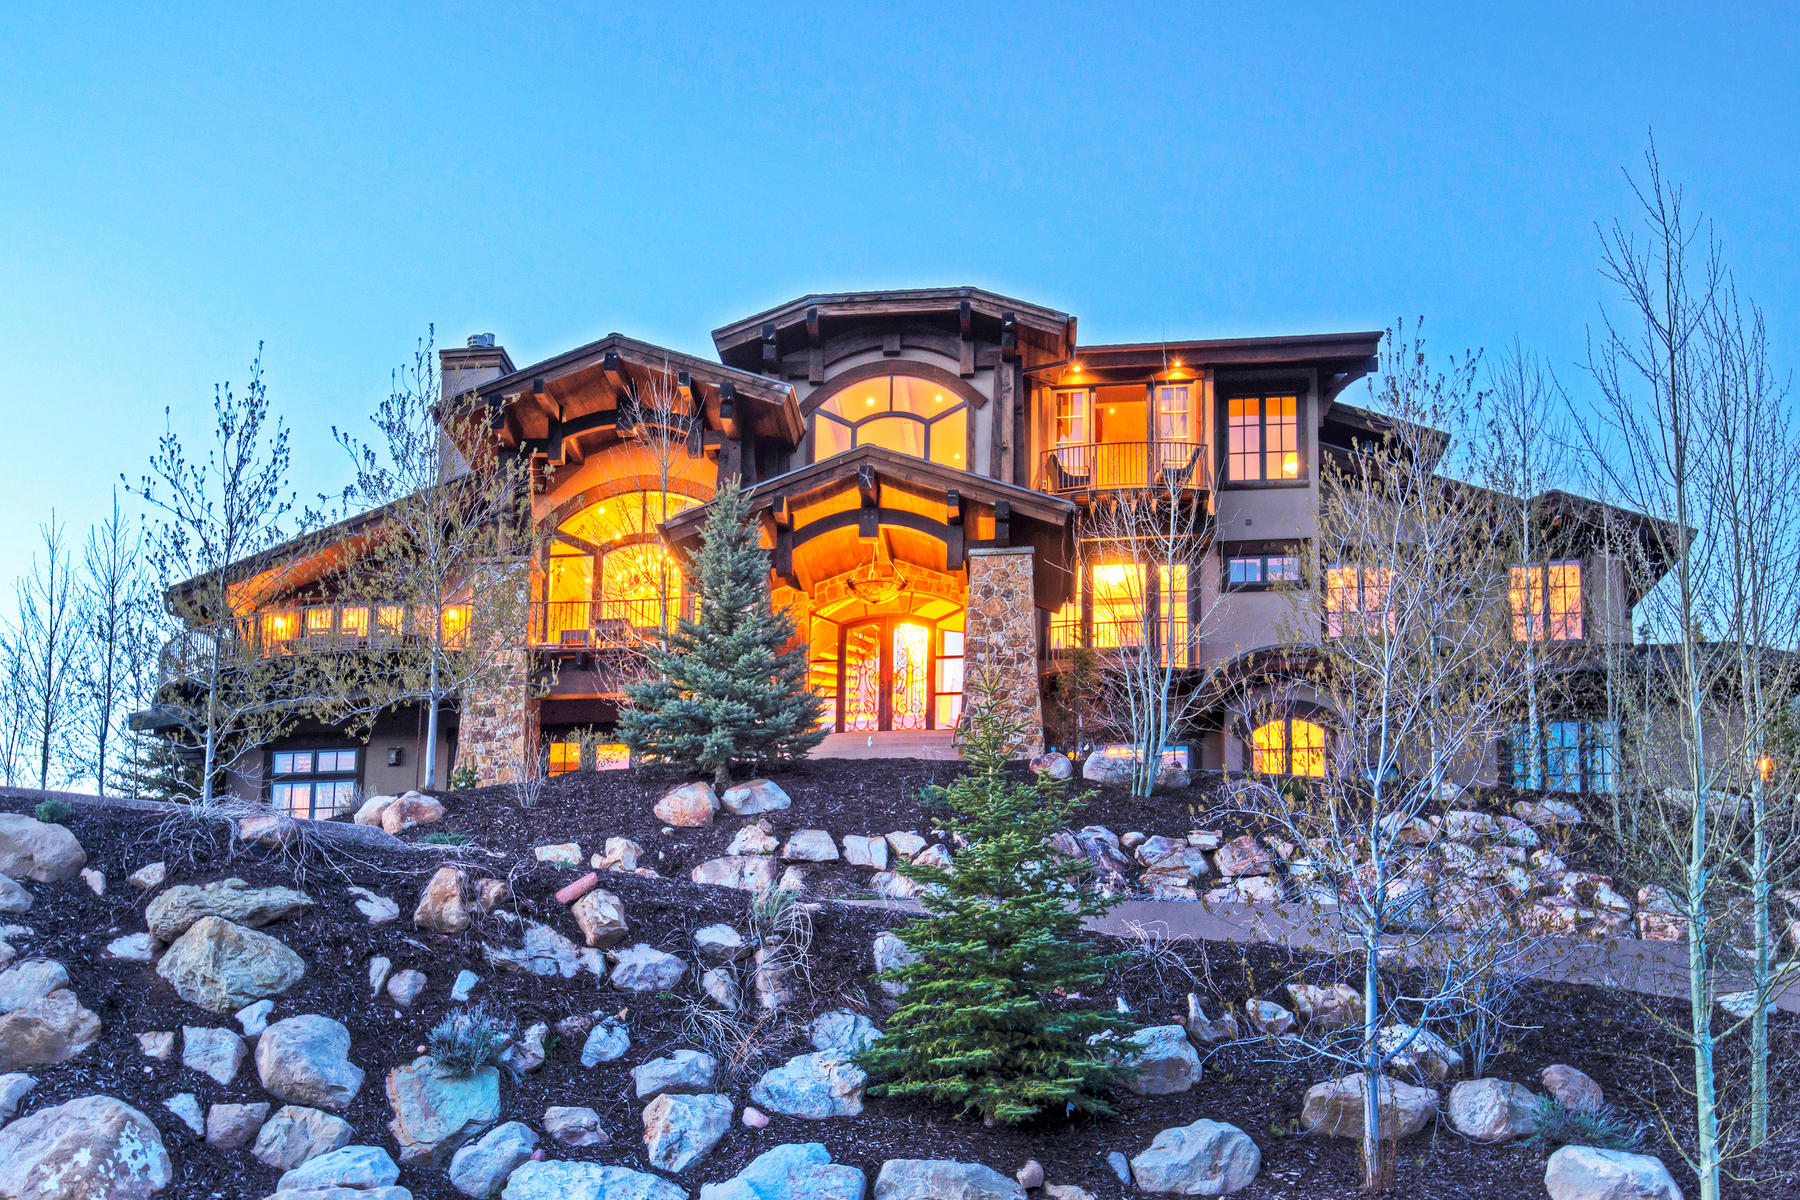 Casa Unifamiliar por un Venta en Refined Elegance in the Mountains 8448 N Trails Dr Park City, Utah, 84098 Estados Unidos